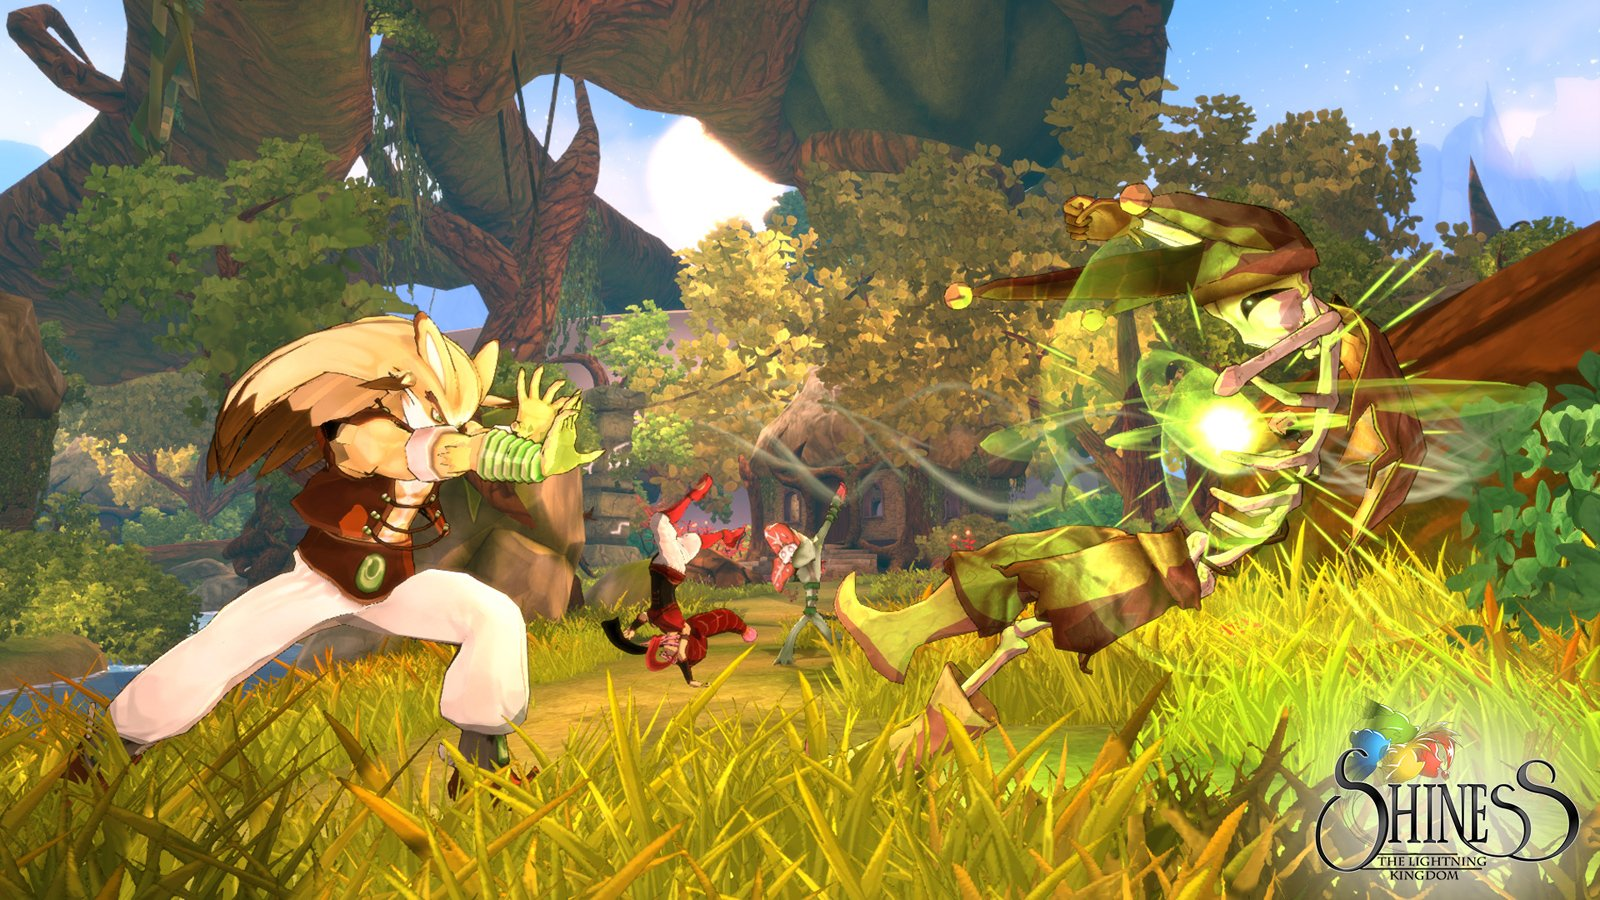 Shiness: The Lightning Kingdom review